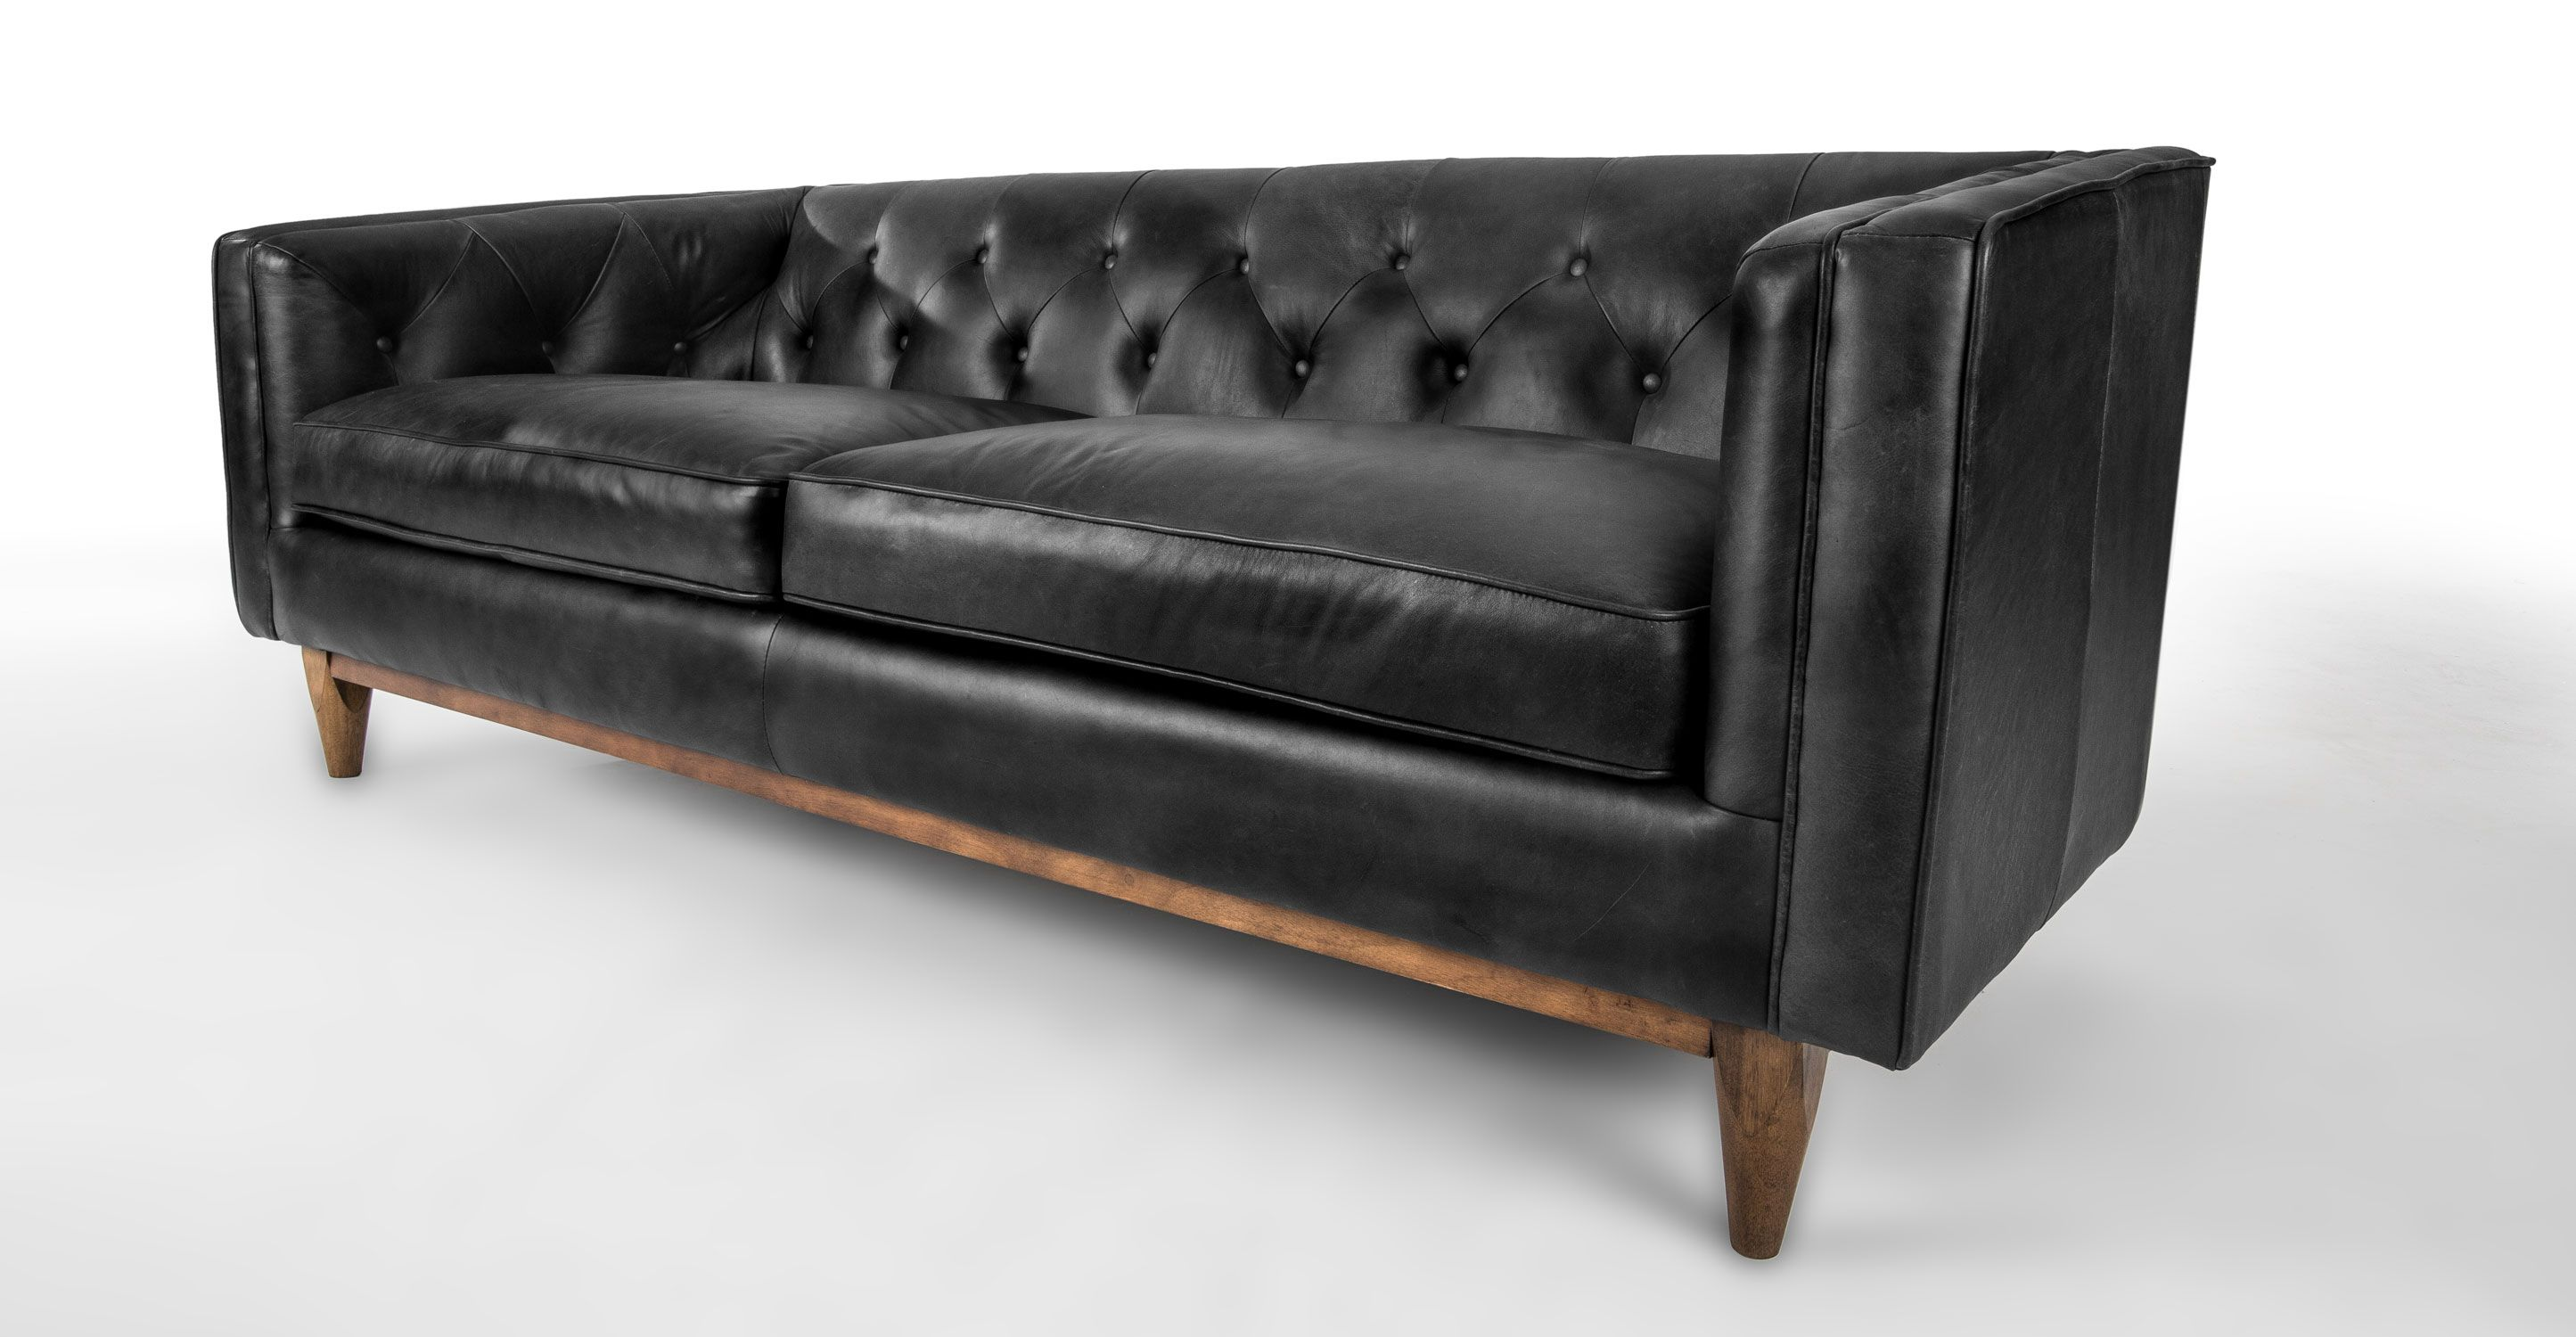 Magnificent Alcott Oxford Black Sofa Sofas Article Modern Mid Spiritservingveterans Wood Chair Design Ideas Spiritservingveteransorg